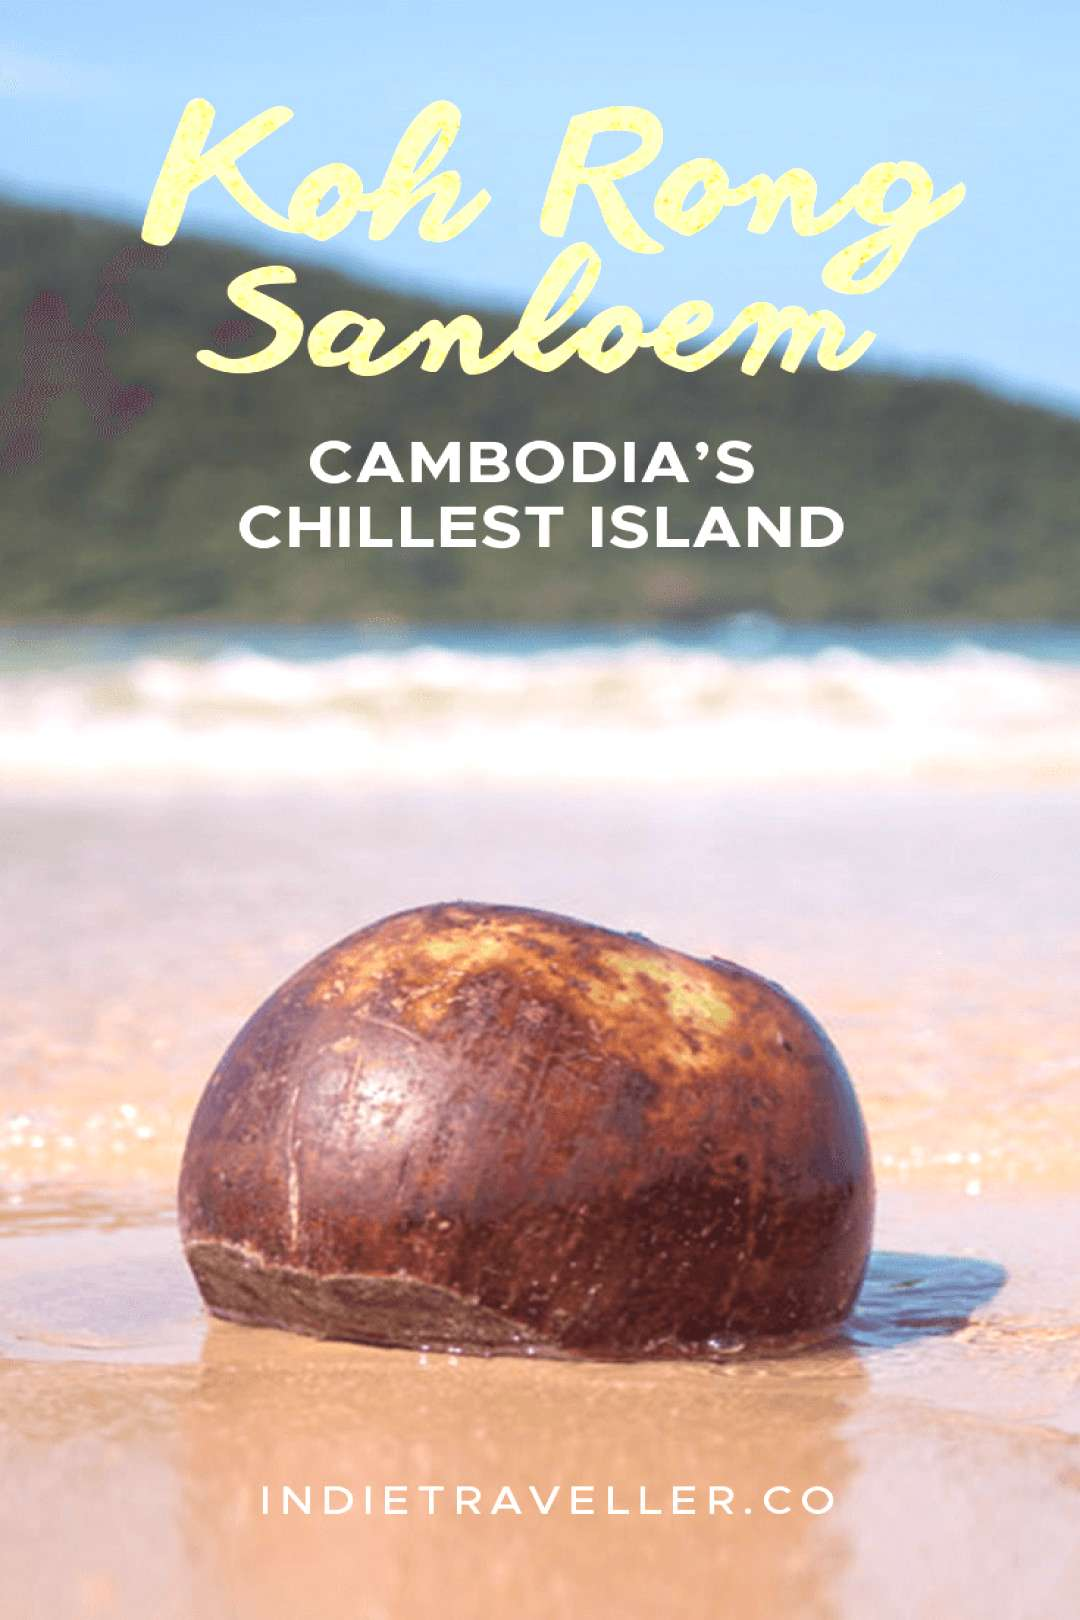 Koh Rong Sanloem Impressions • Indie Traveller You cant Go Wrong by going to Koh Rong. Read thes